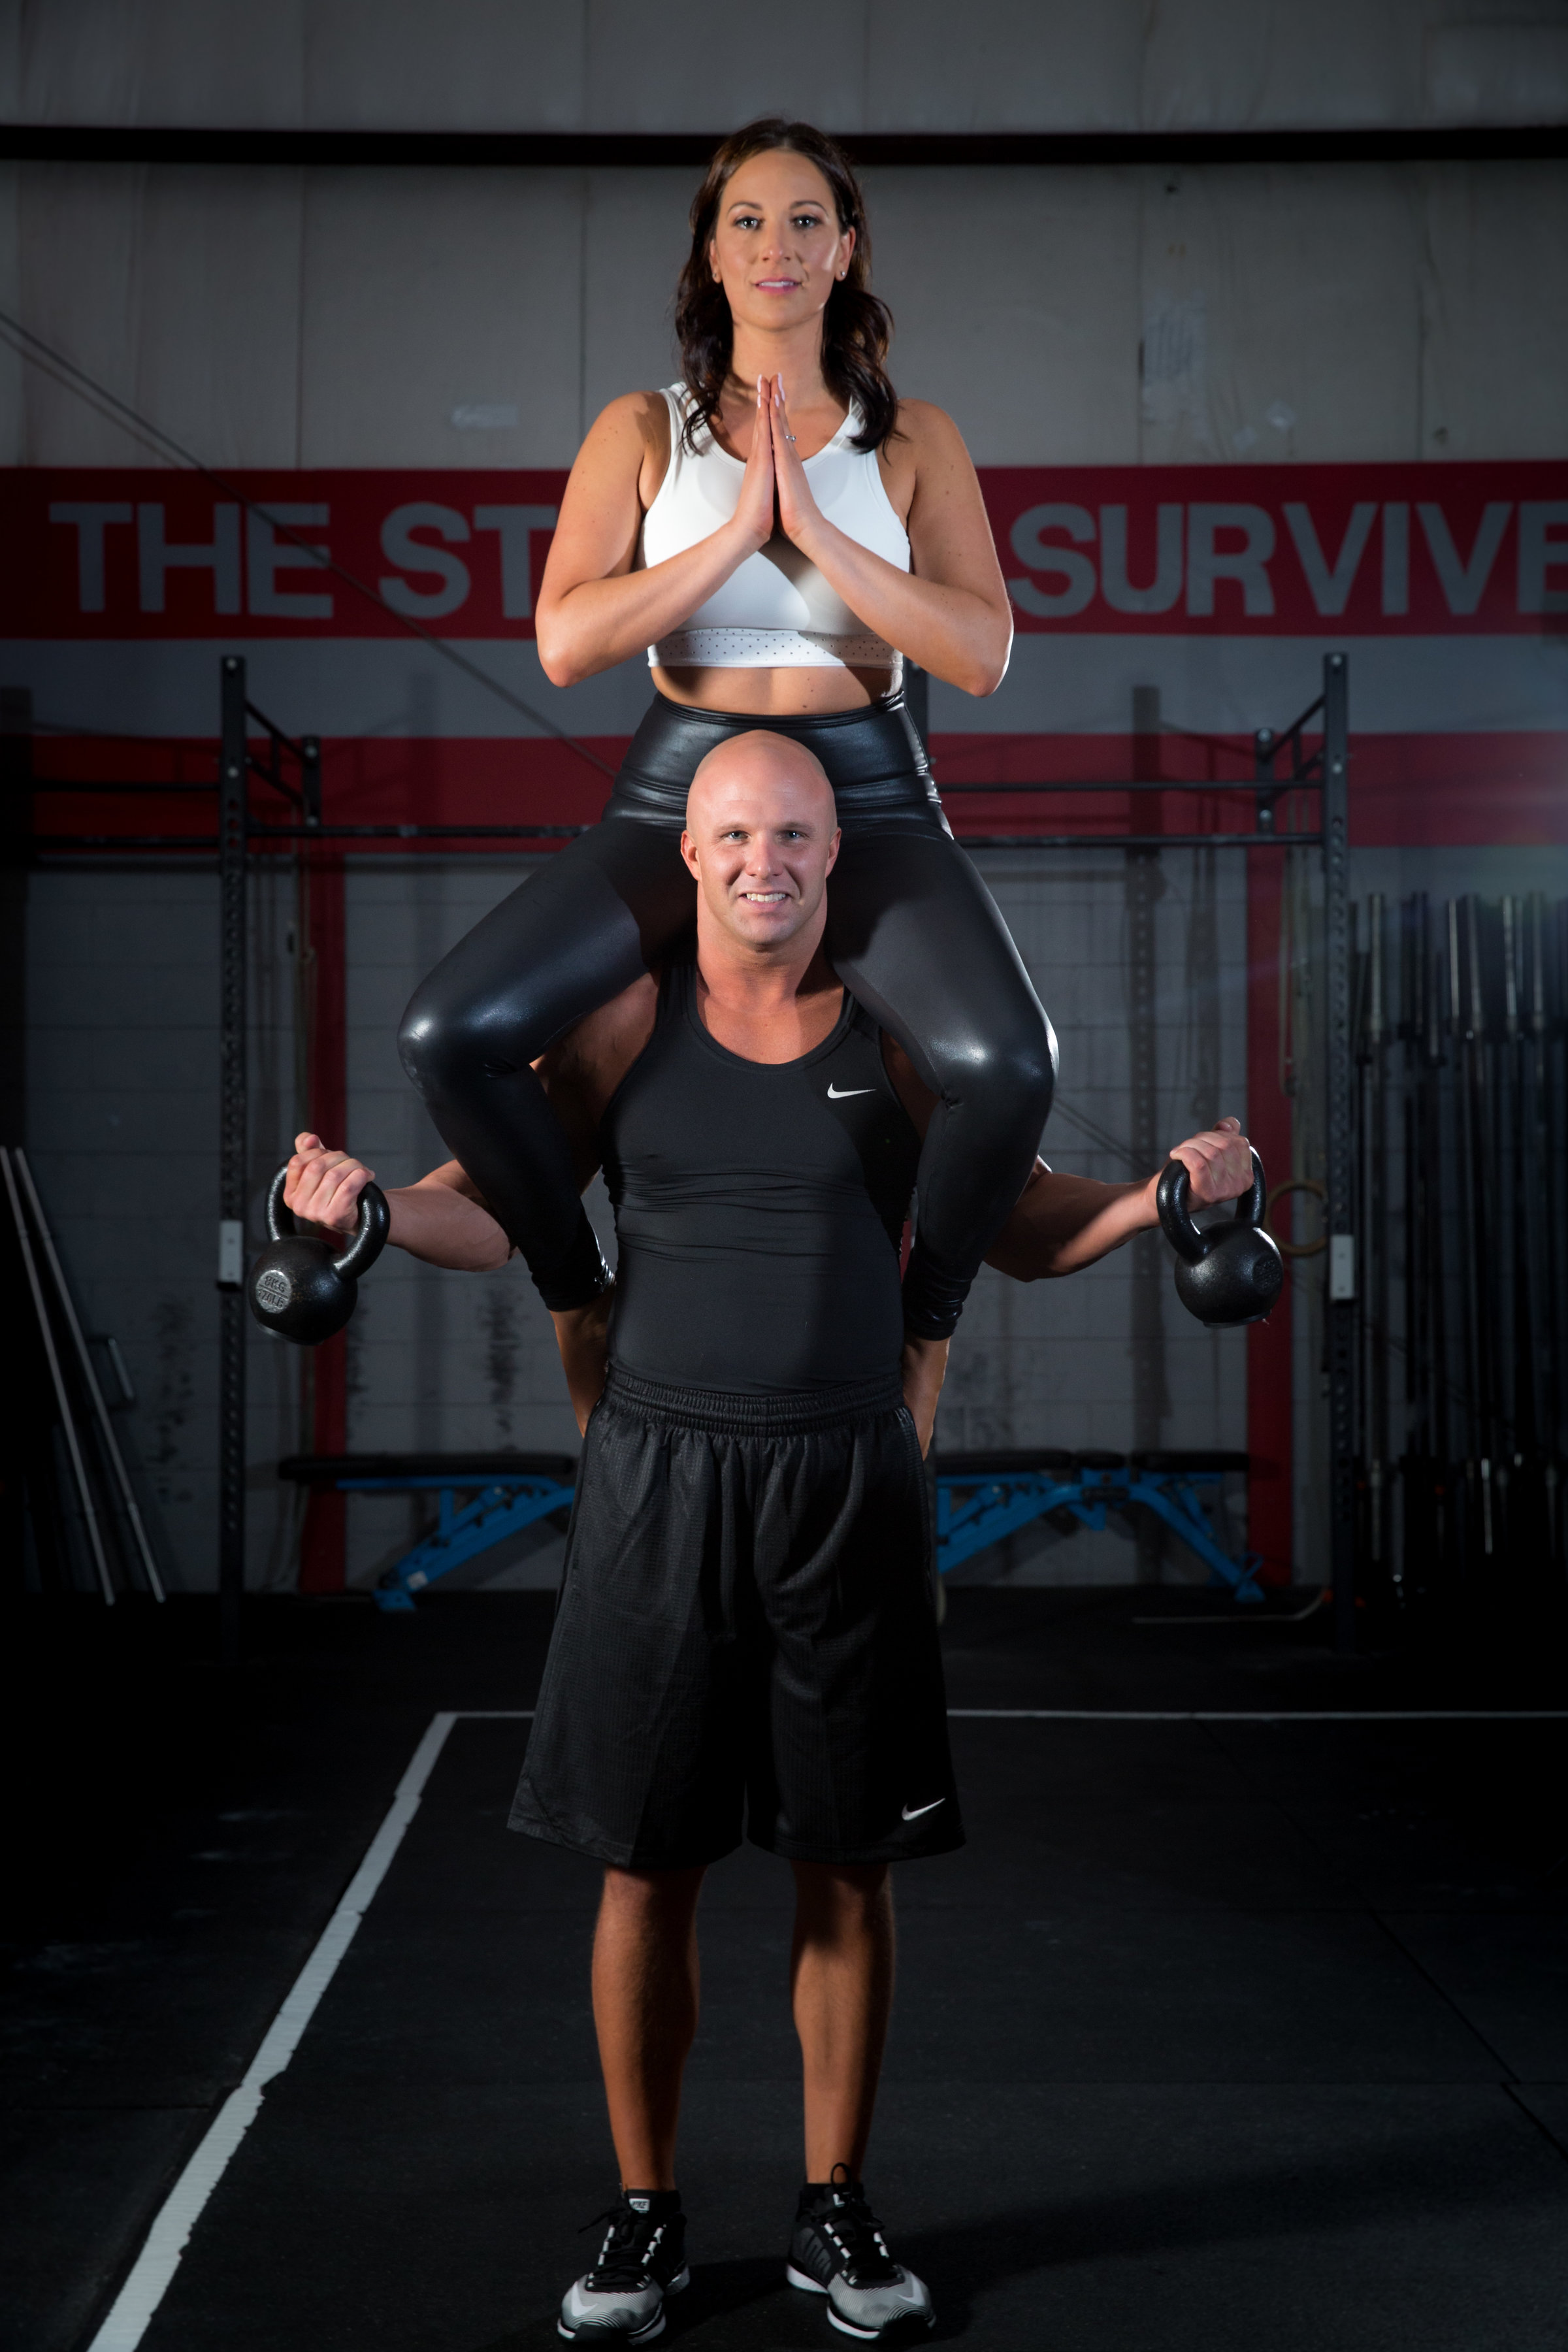 4-eyes-photography-engagement-shoot-couples-working-out-113.jpg